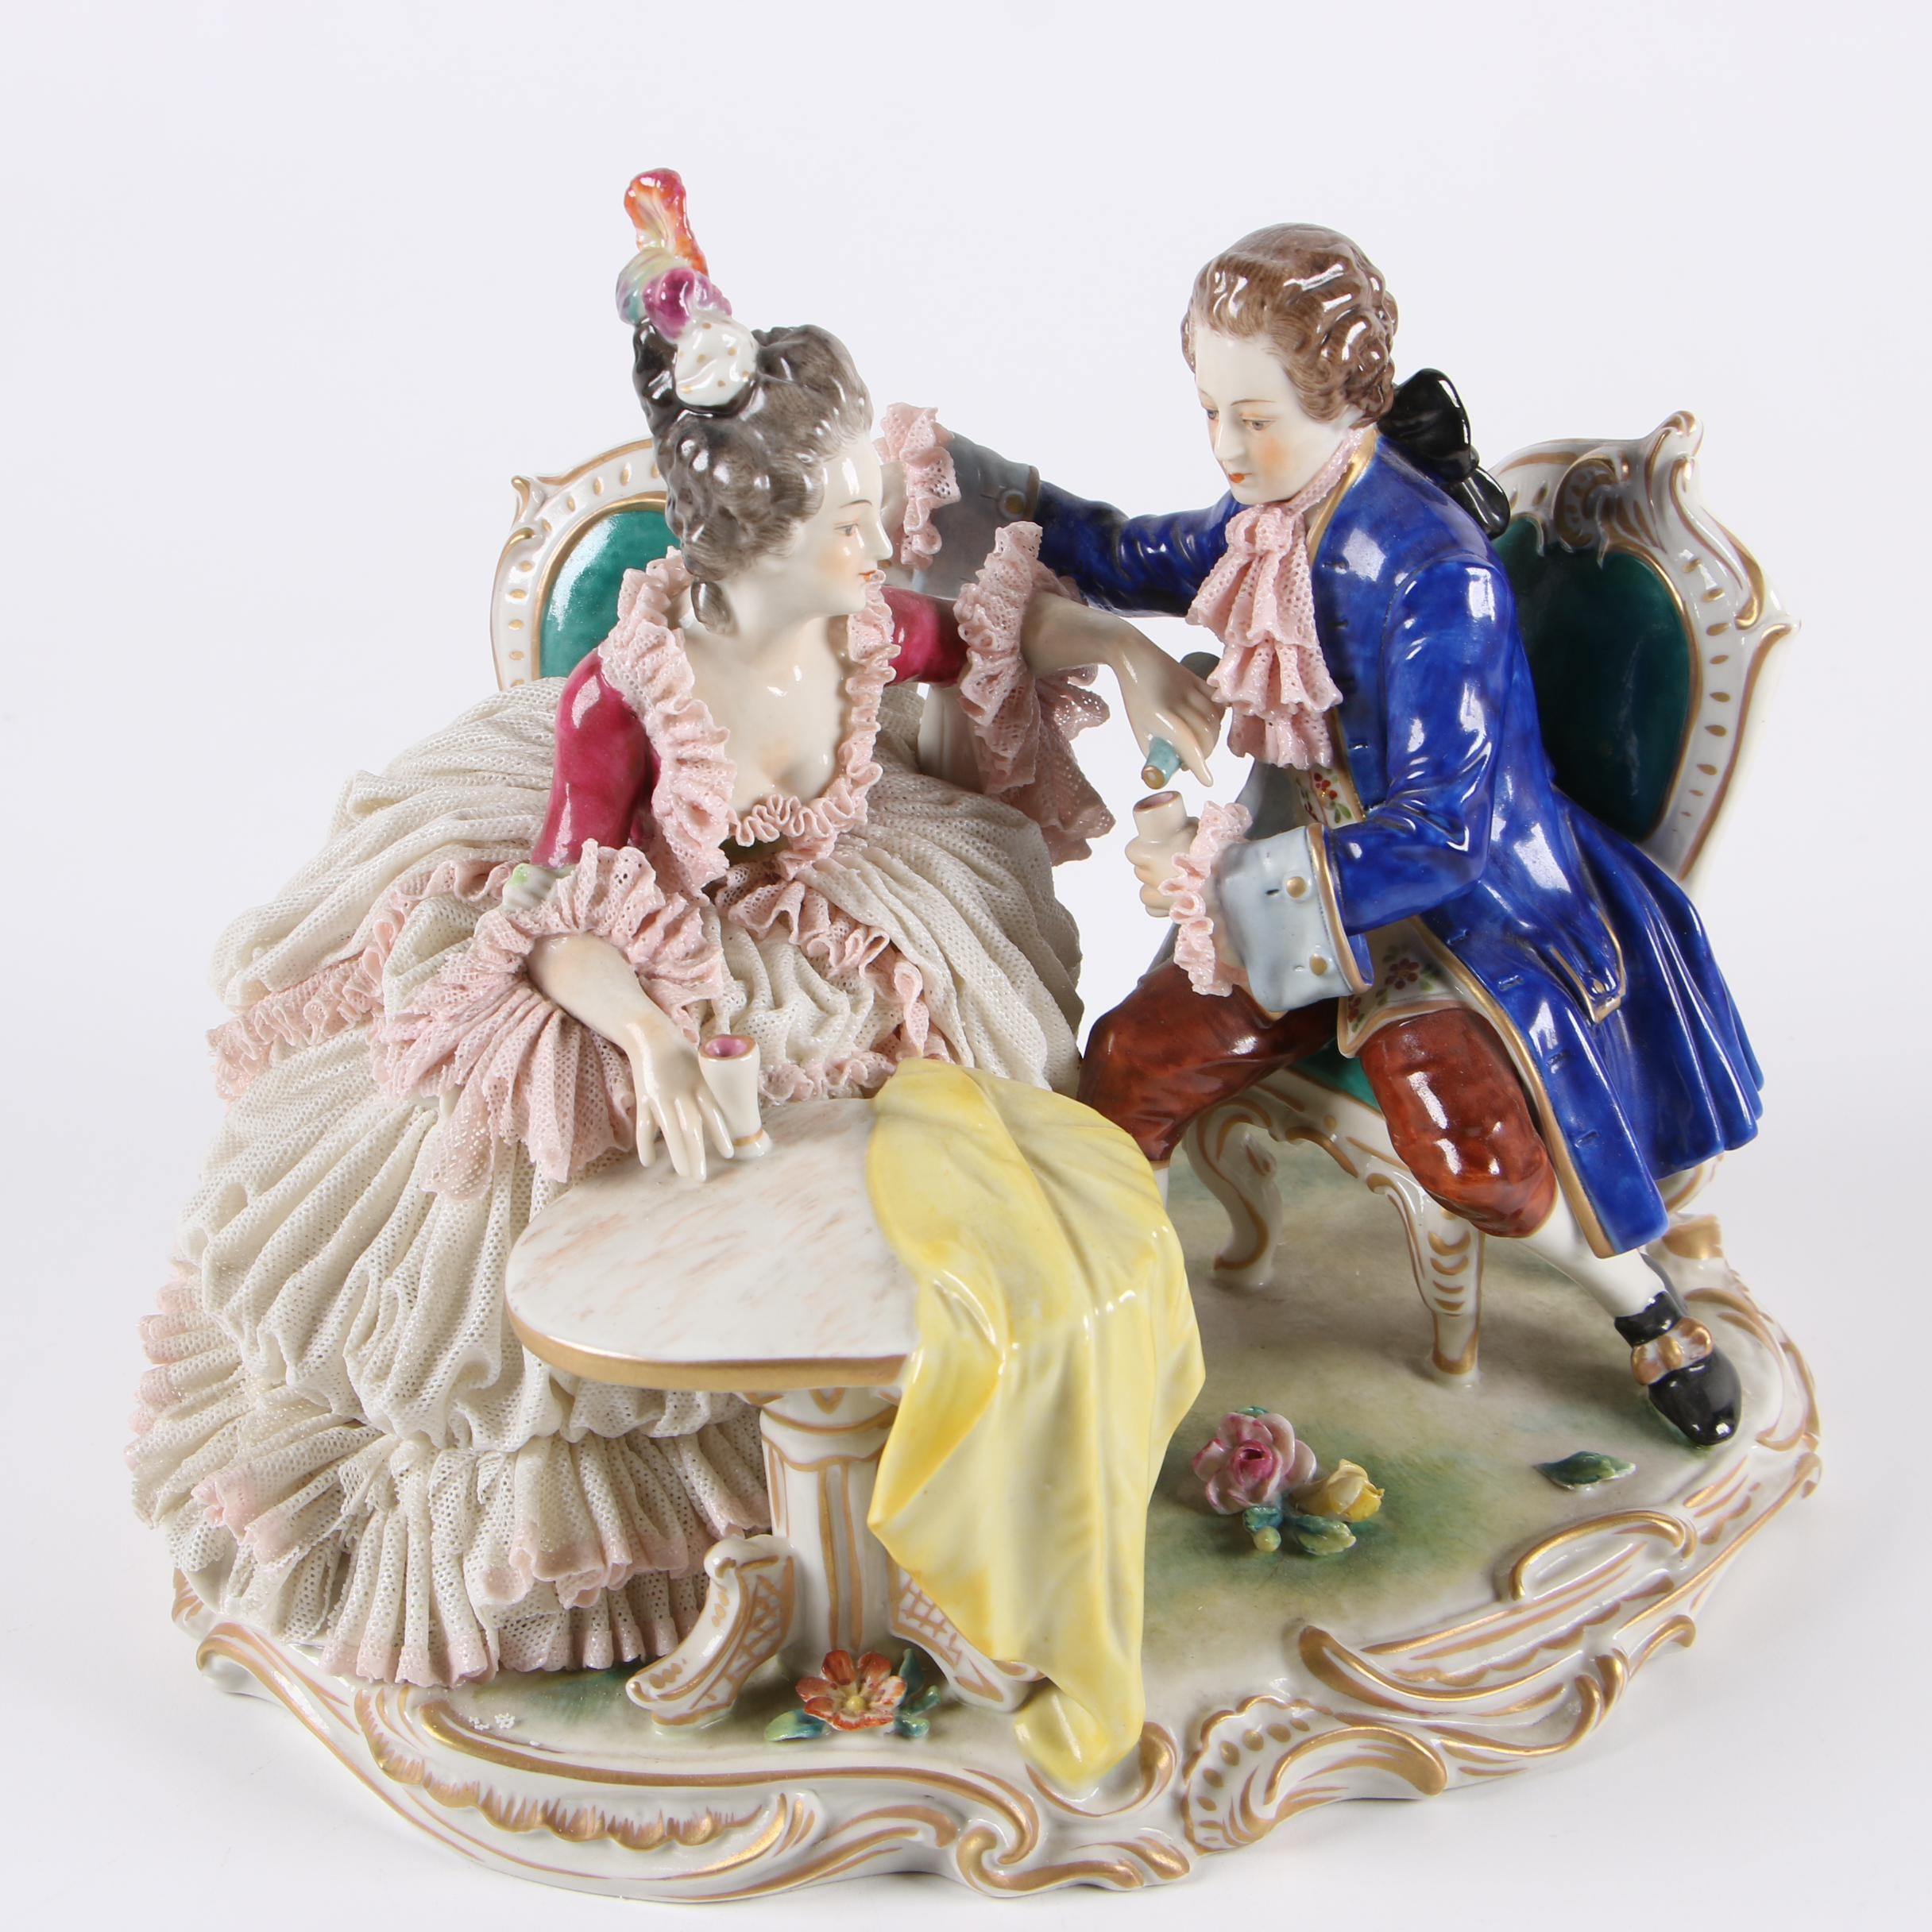 German Volkstedter Porcelain Tableau Figurine, Early 20th Century